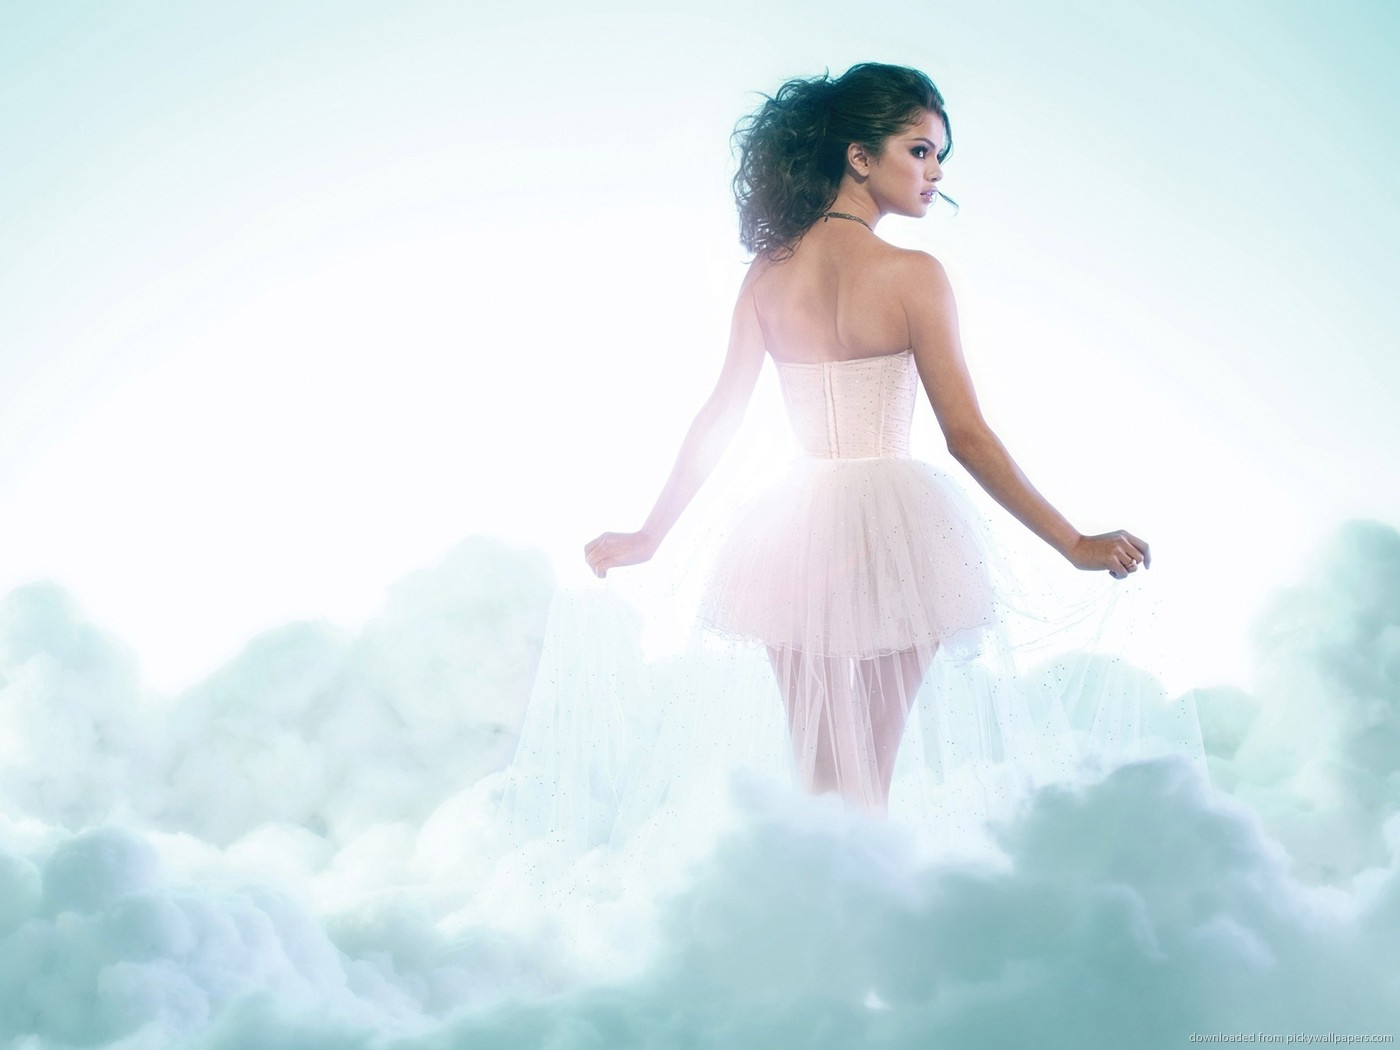 ... Selena Gomez in clouds for 1400x1050